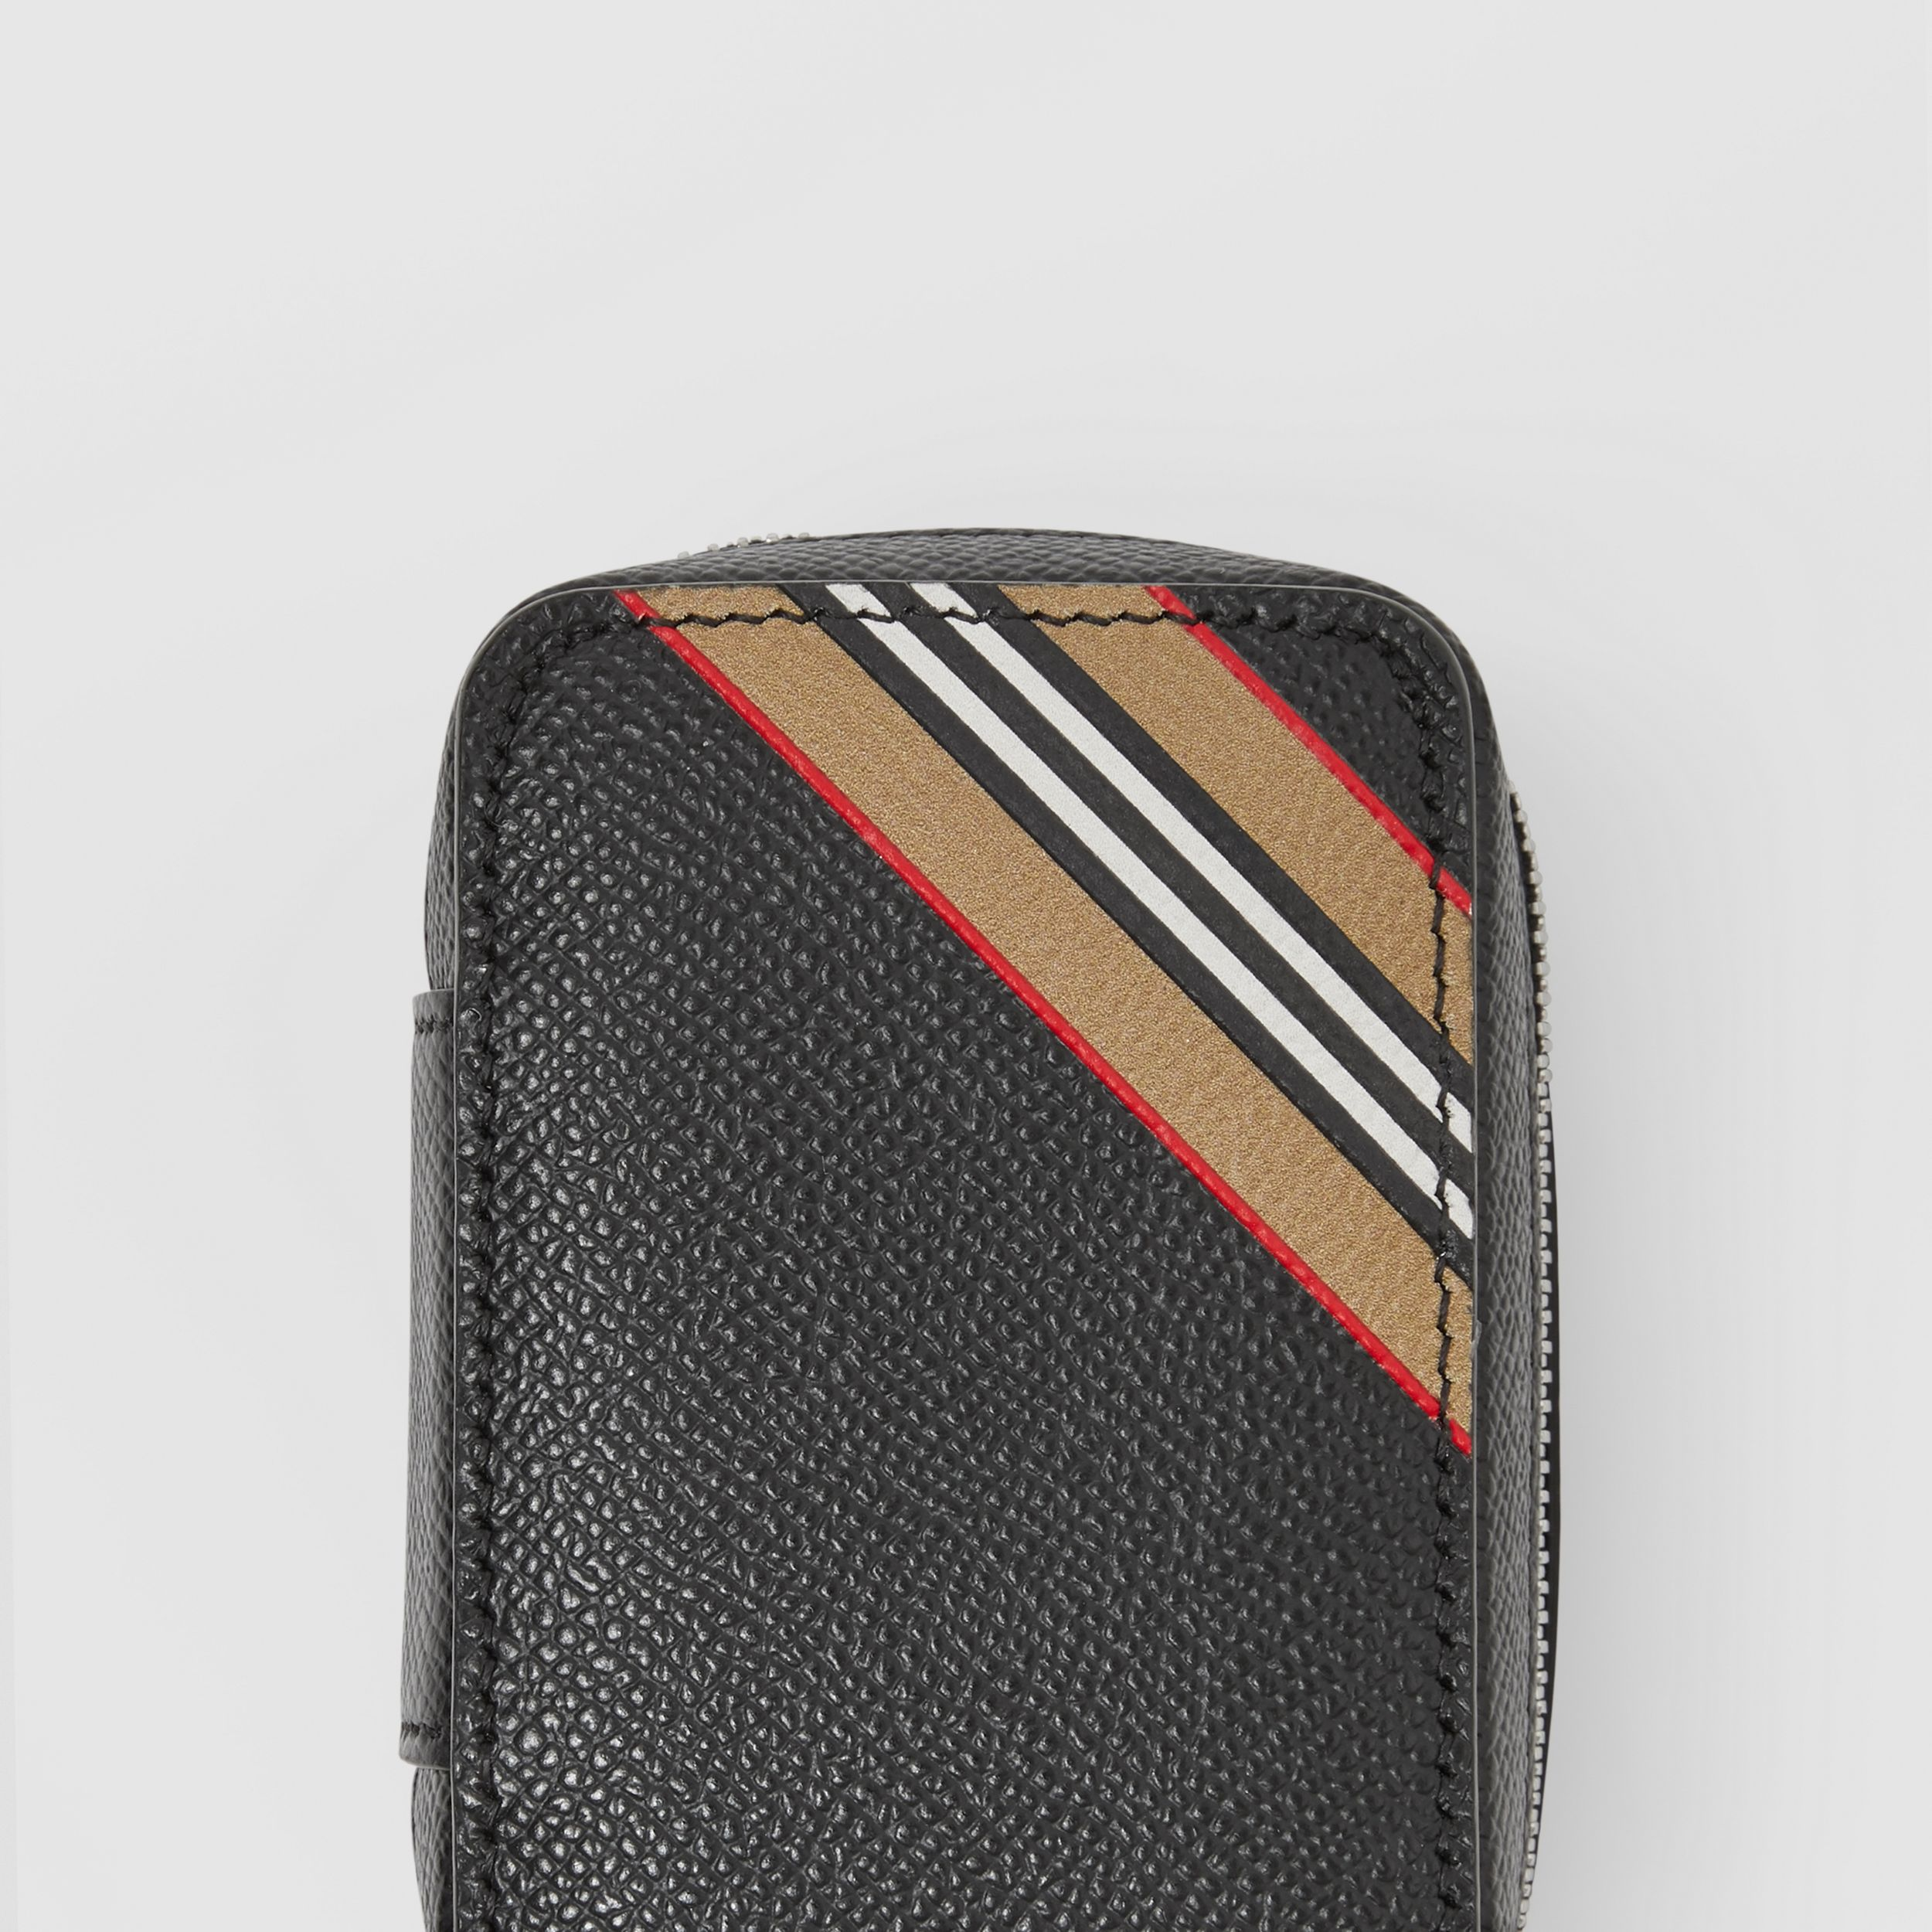 Icon Stripe Print Grainy Leather Cufflink Case in Black - Men | Burberry - 2